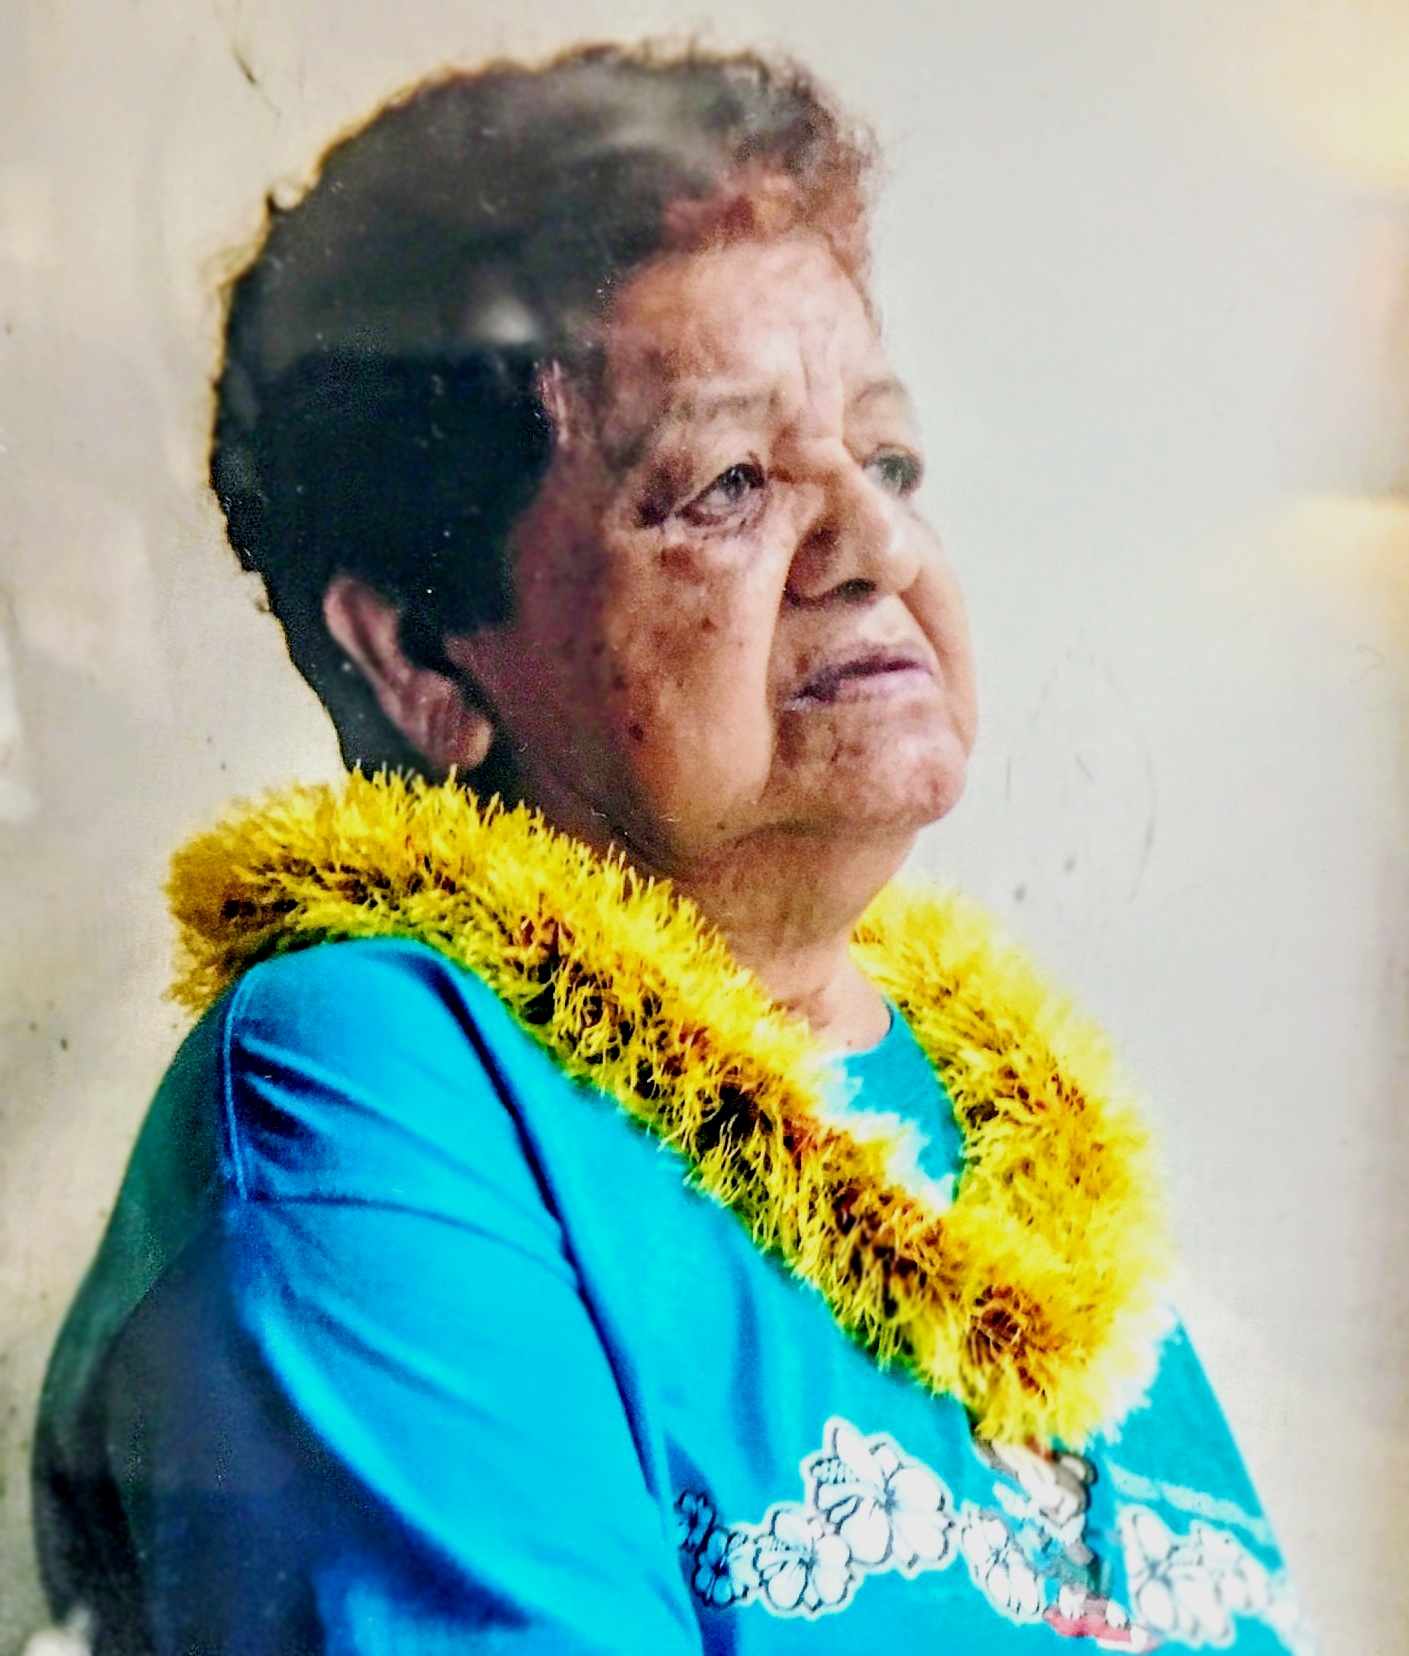 GWENDOLYN KEKAUWOHI MCGWIN (SMITH)